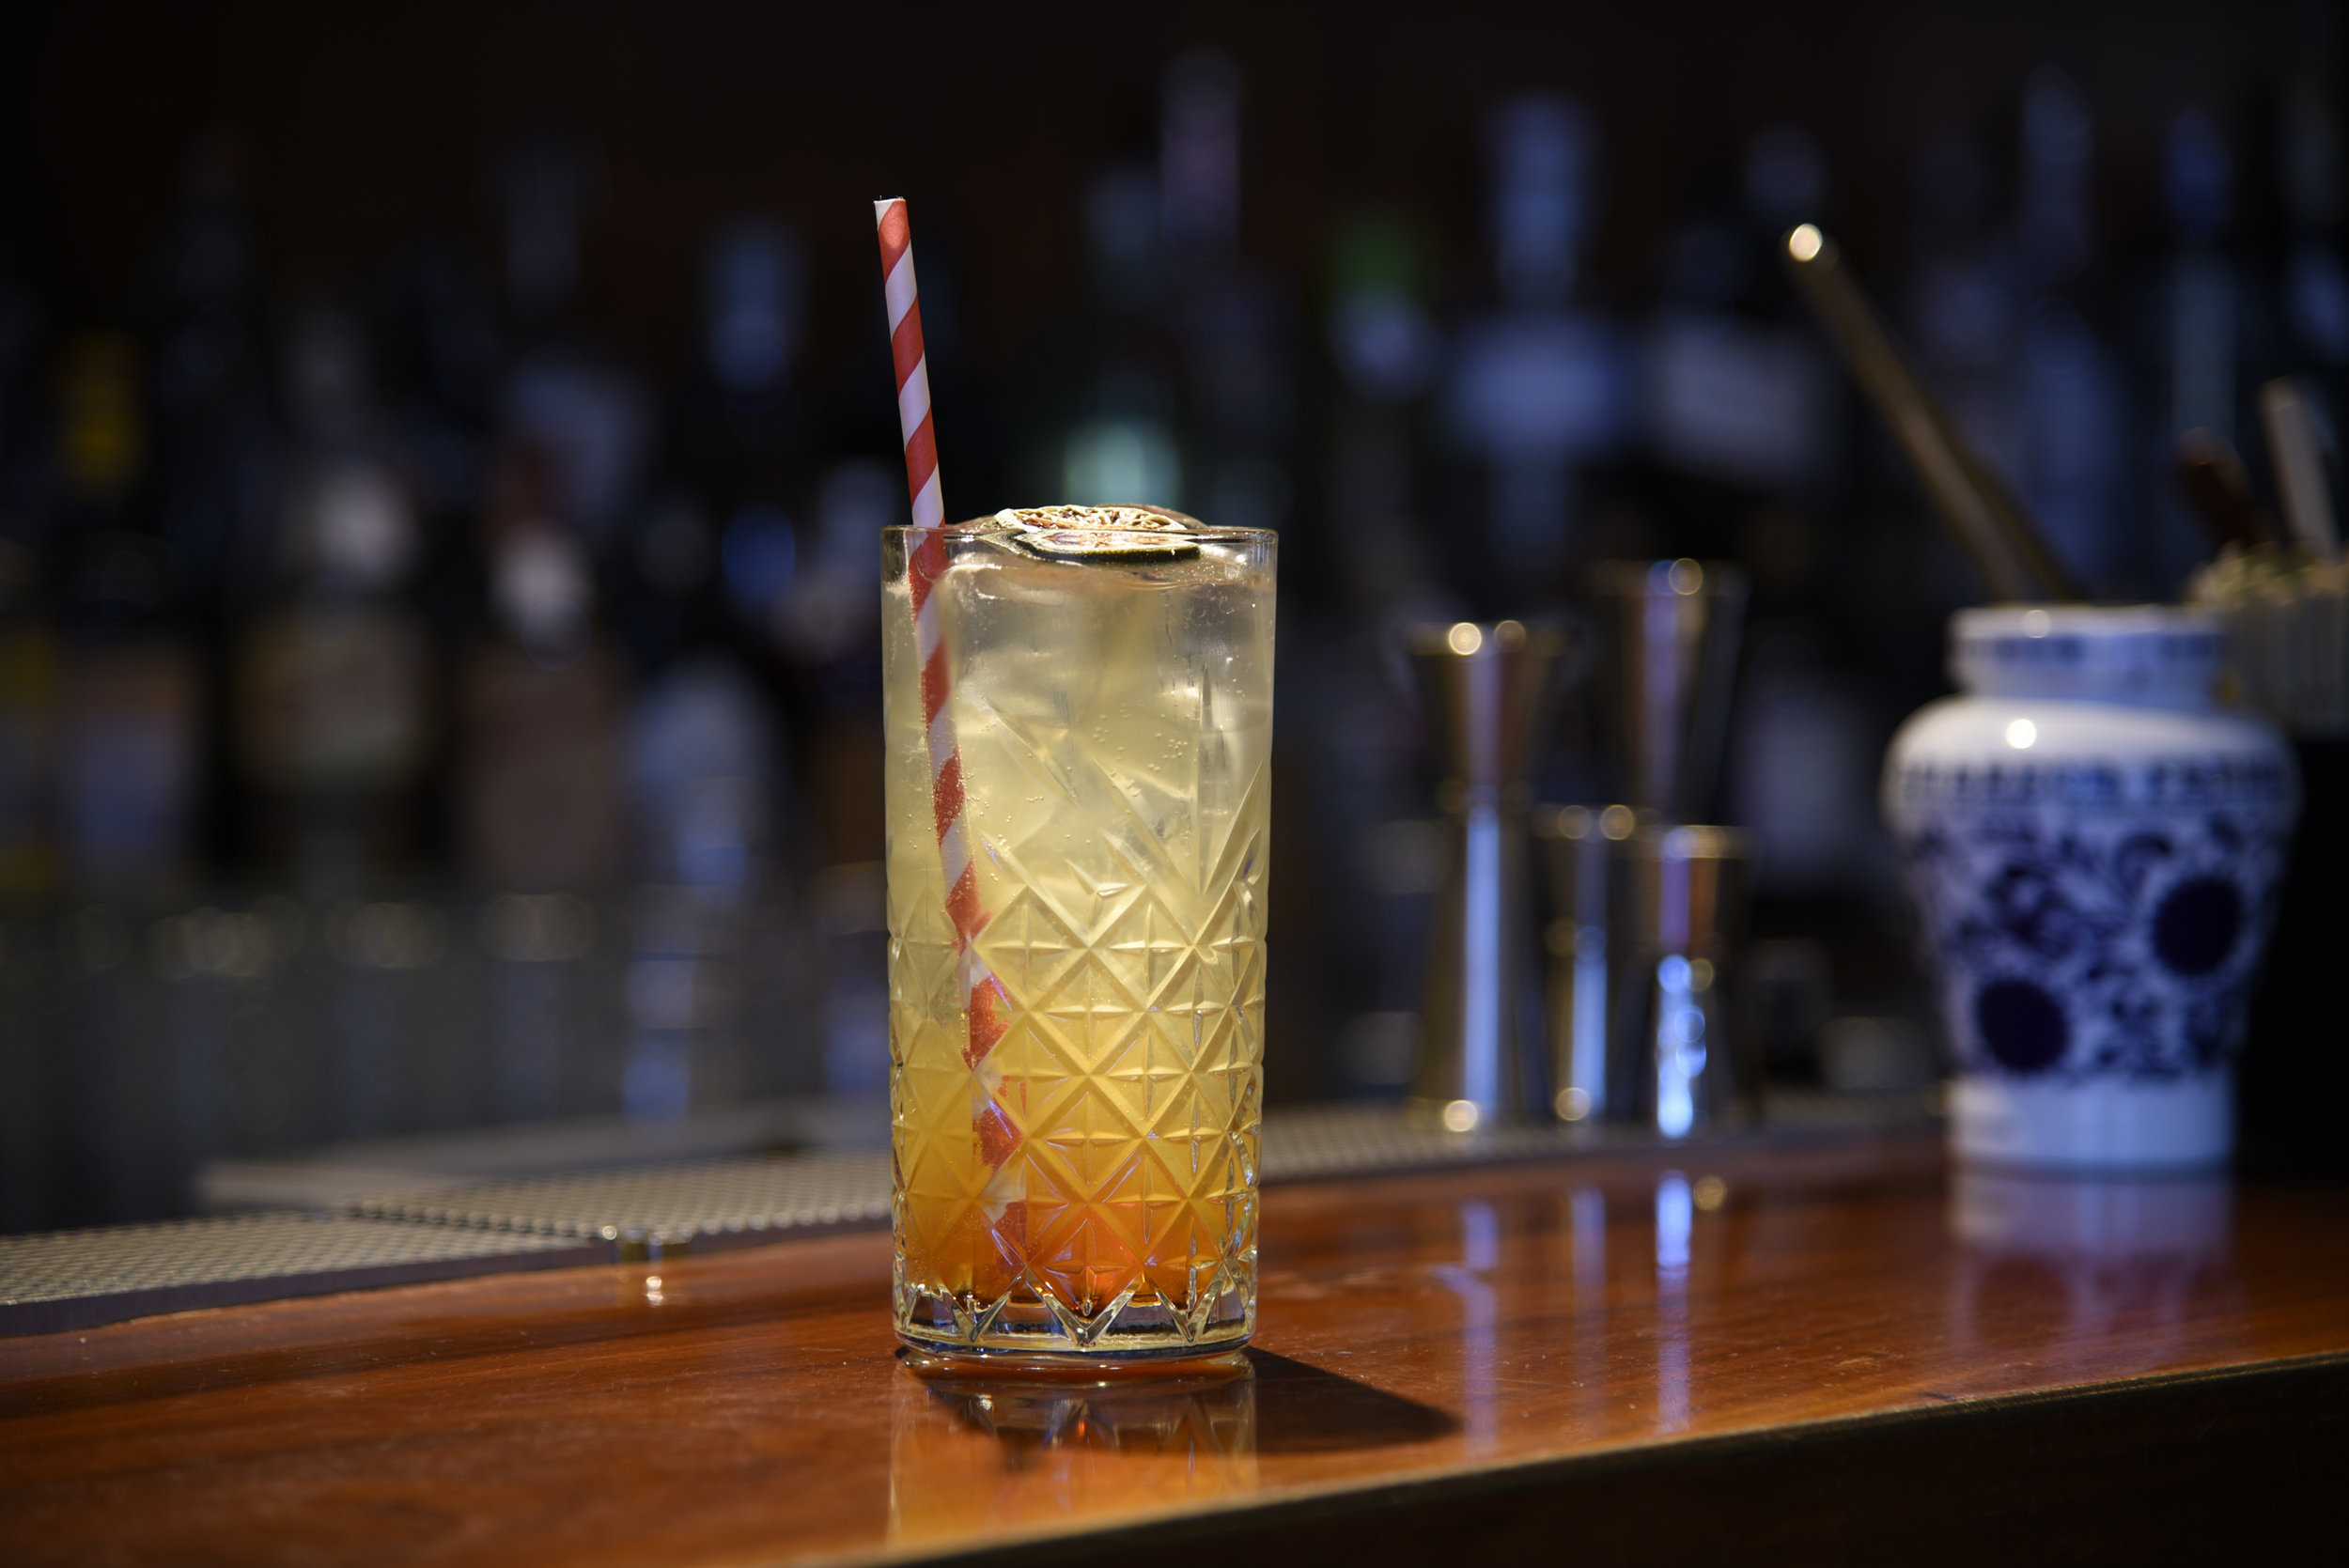 Speyside Mule: Glen Grant 5 yo, Lime, amaro reduction, ginger beer